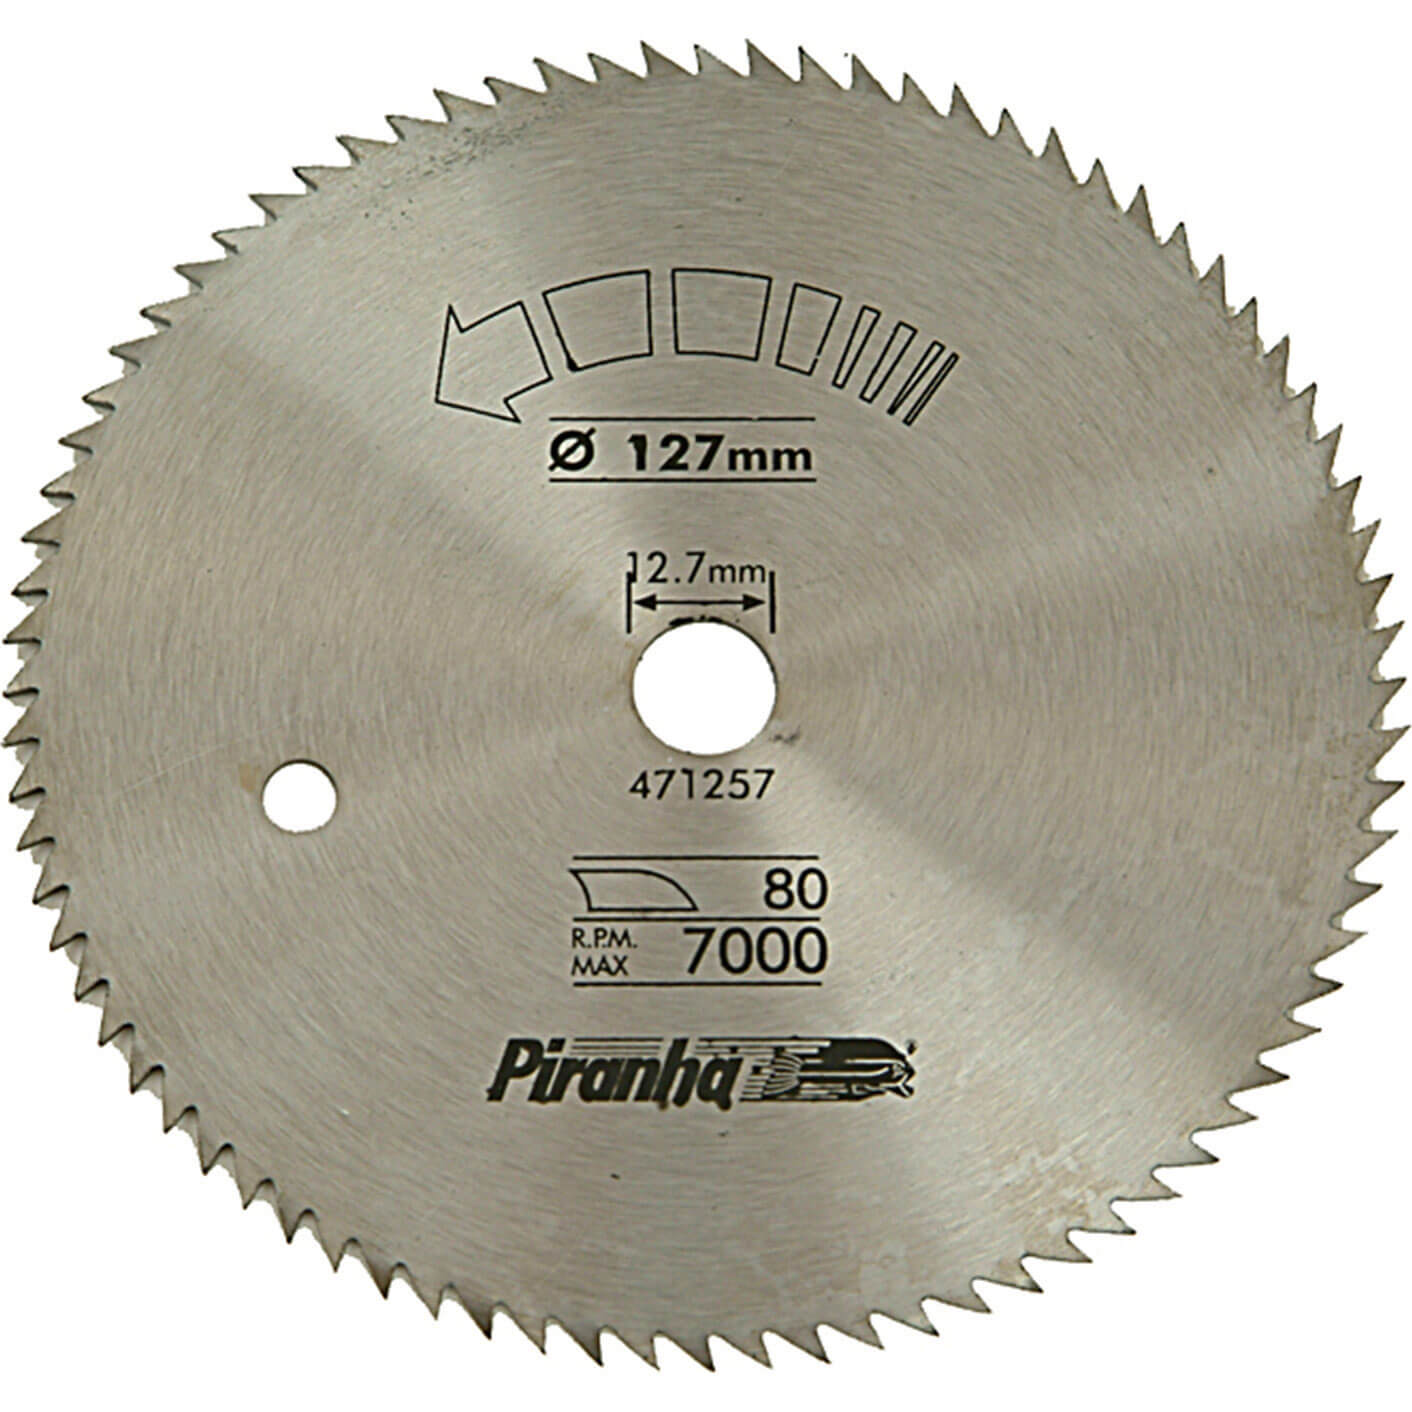 Black & Decker Piranha Circular Saw Blade 127mm 80T 12.7mm